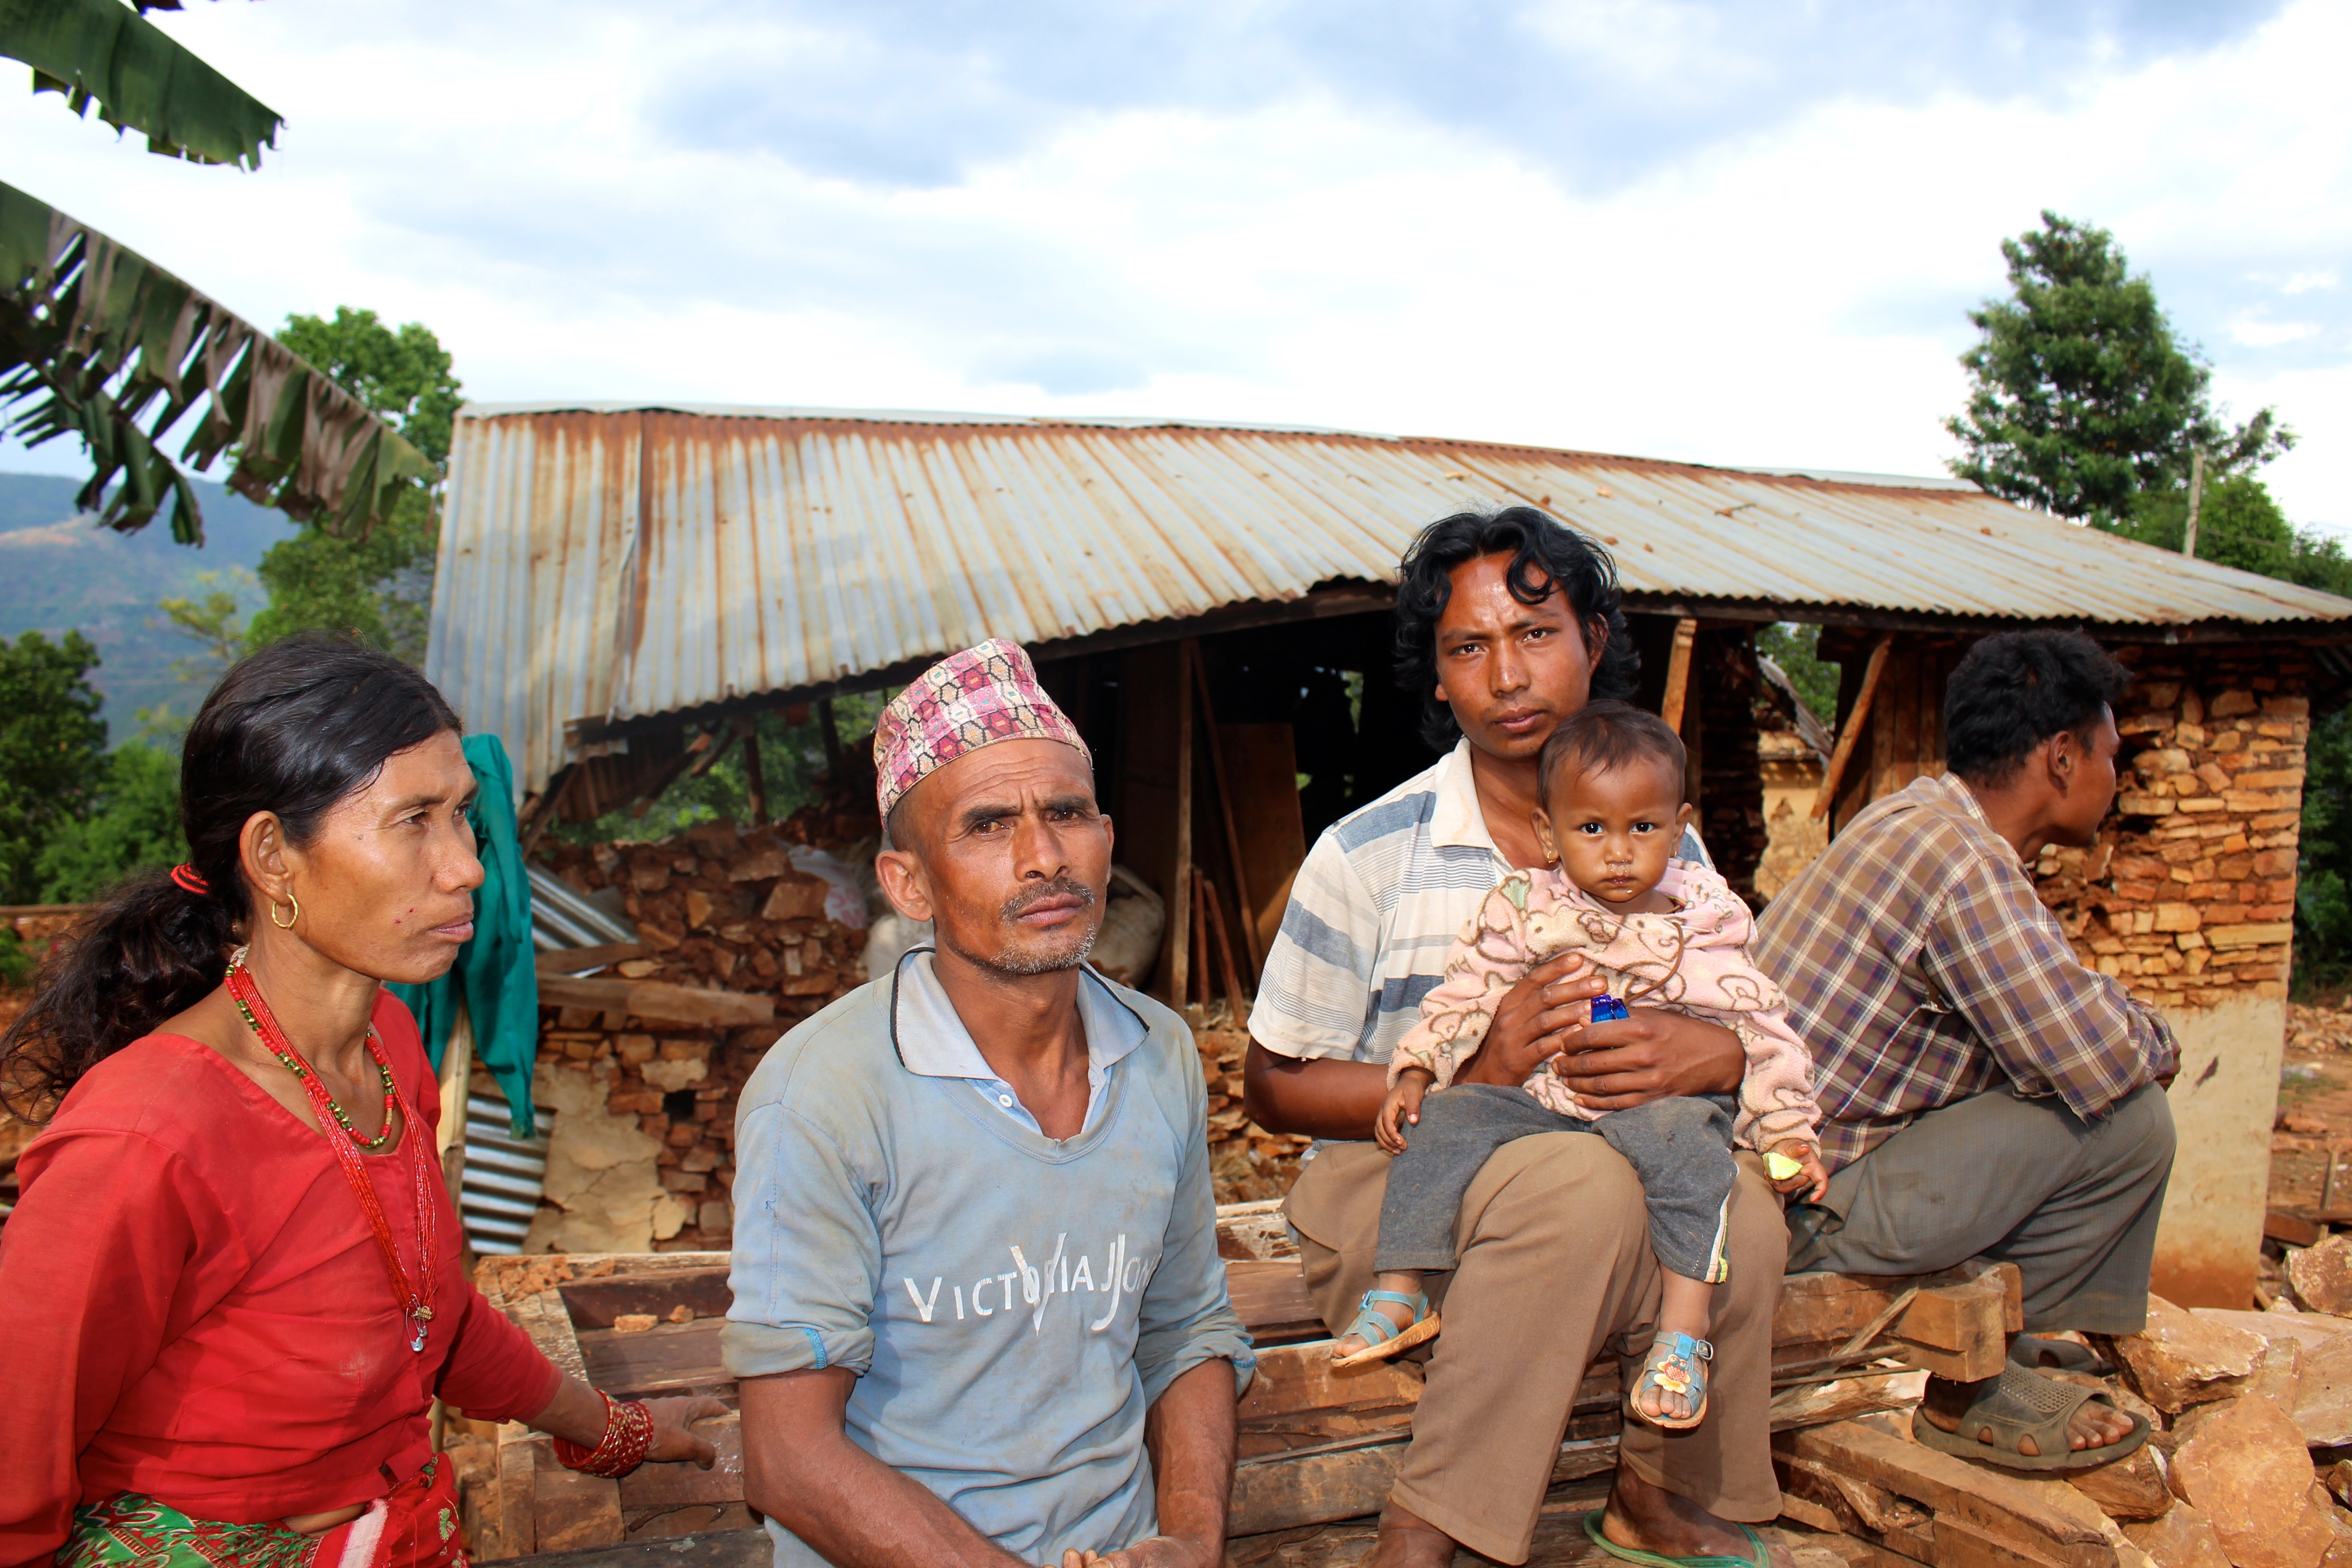 Bir Bahadur Rai and his family in front of their two houses that were completely destroyed in Banghar village after a major earthquake struck Nepal on 25 April 2015.